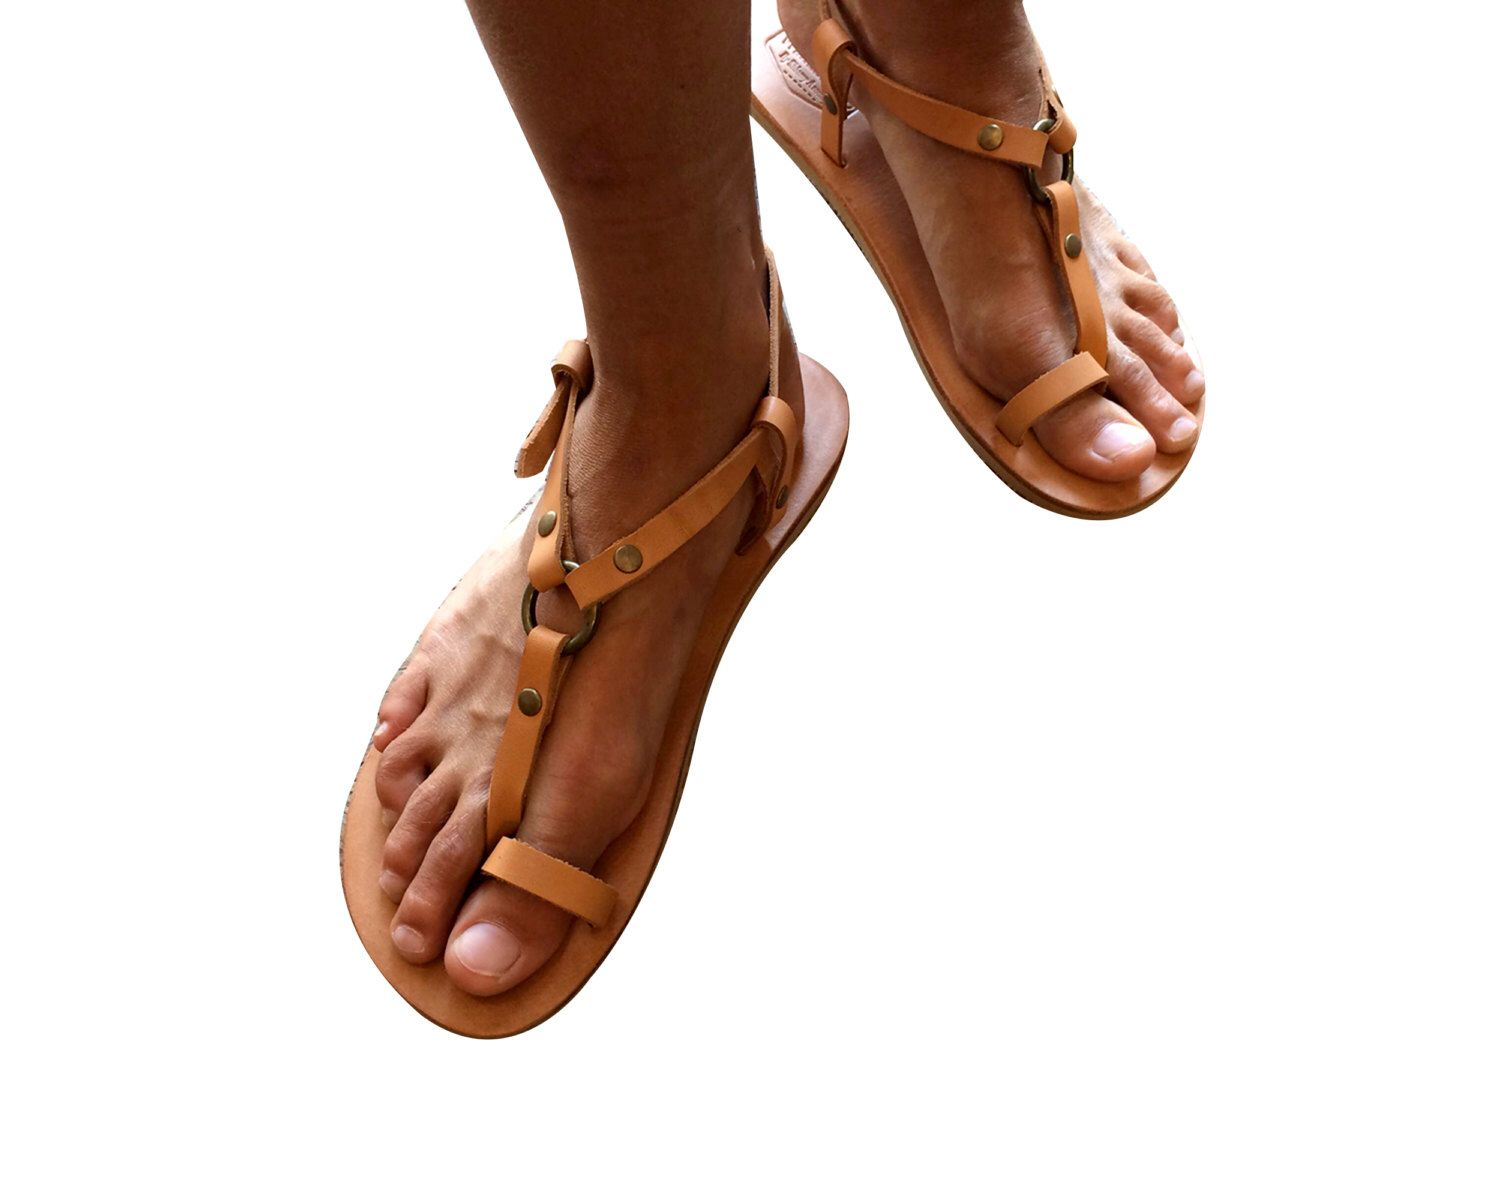 Womens sandals etsy - Tan Leather Sandals For Women Men Design 33a Handmade Leather Sandals Casual Leather Flats Unisex Sandals Genuine Leather S